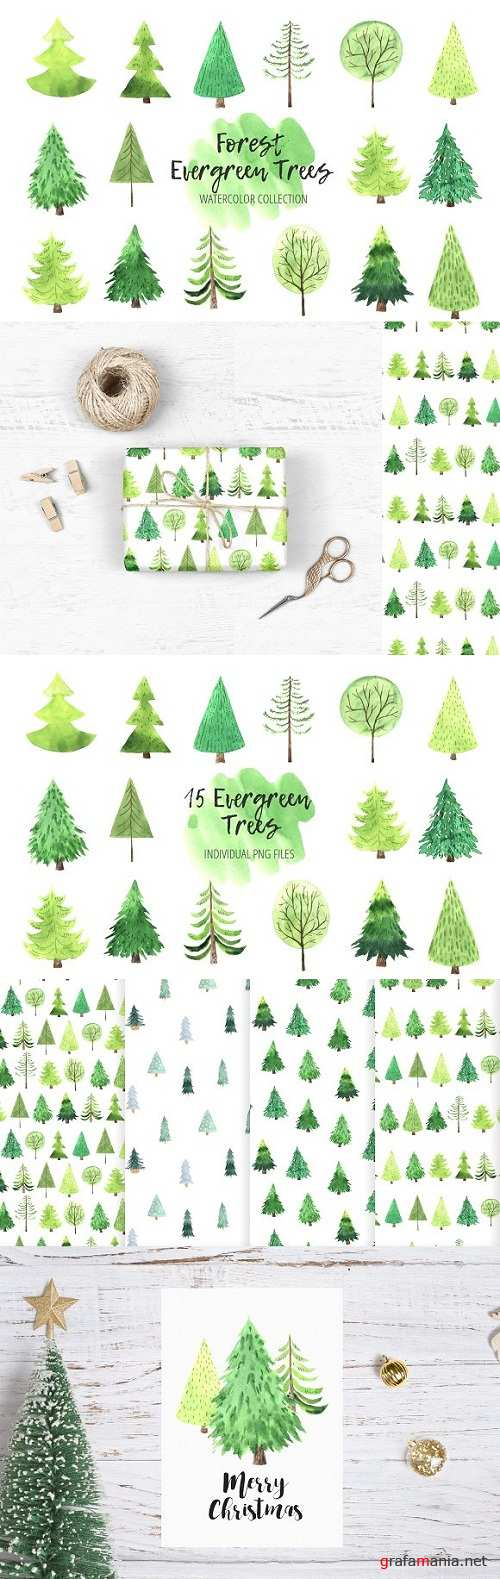 Watercolor Evergreen Trees Set - 3246899